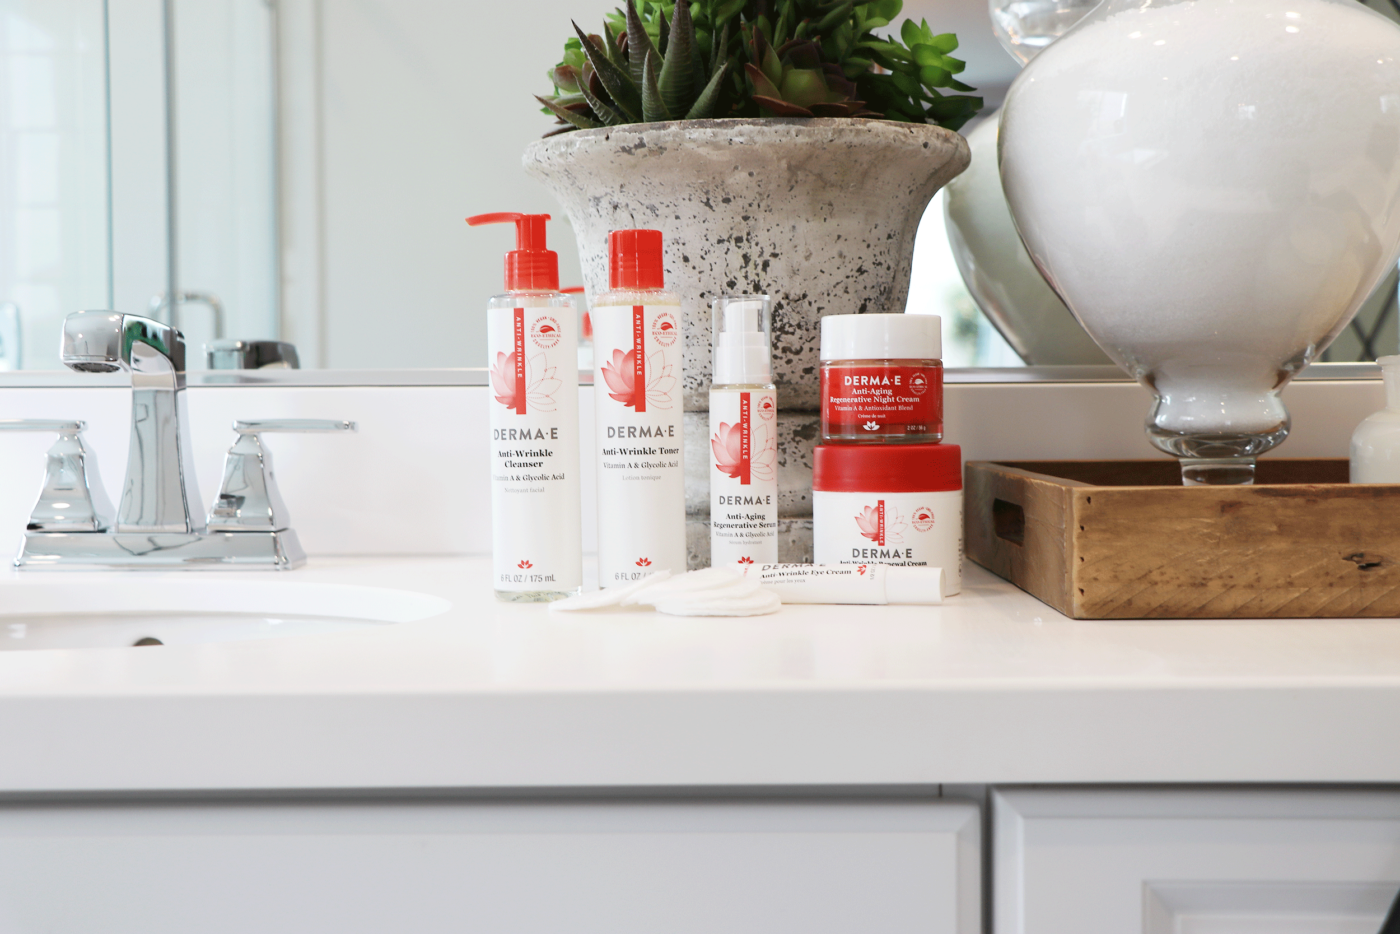 When it comes to skincare, looking young is something we all strive for. But at what cost? If you are looking for an affordable anti-aging routine I have you covered! Click to see why this affordable anti-aging line is amazing.